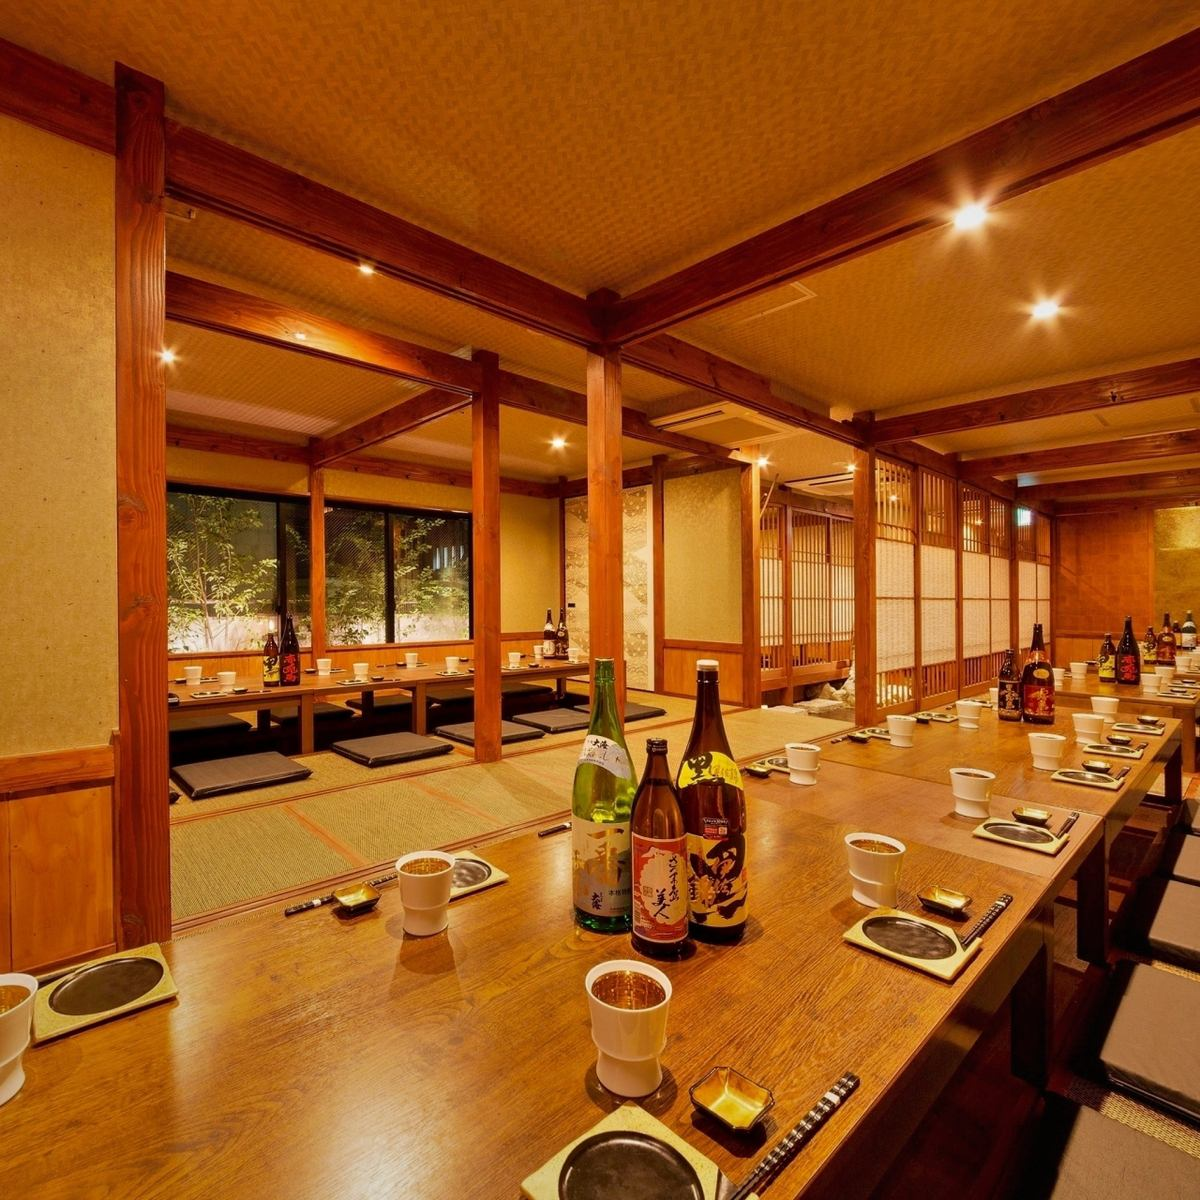 All-seats digging tatami room ♪ We will be handy for company banquets! Great banquet OK ♪